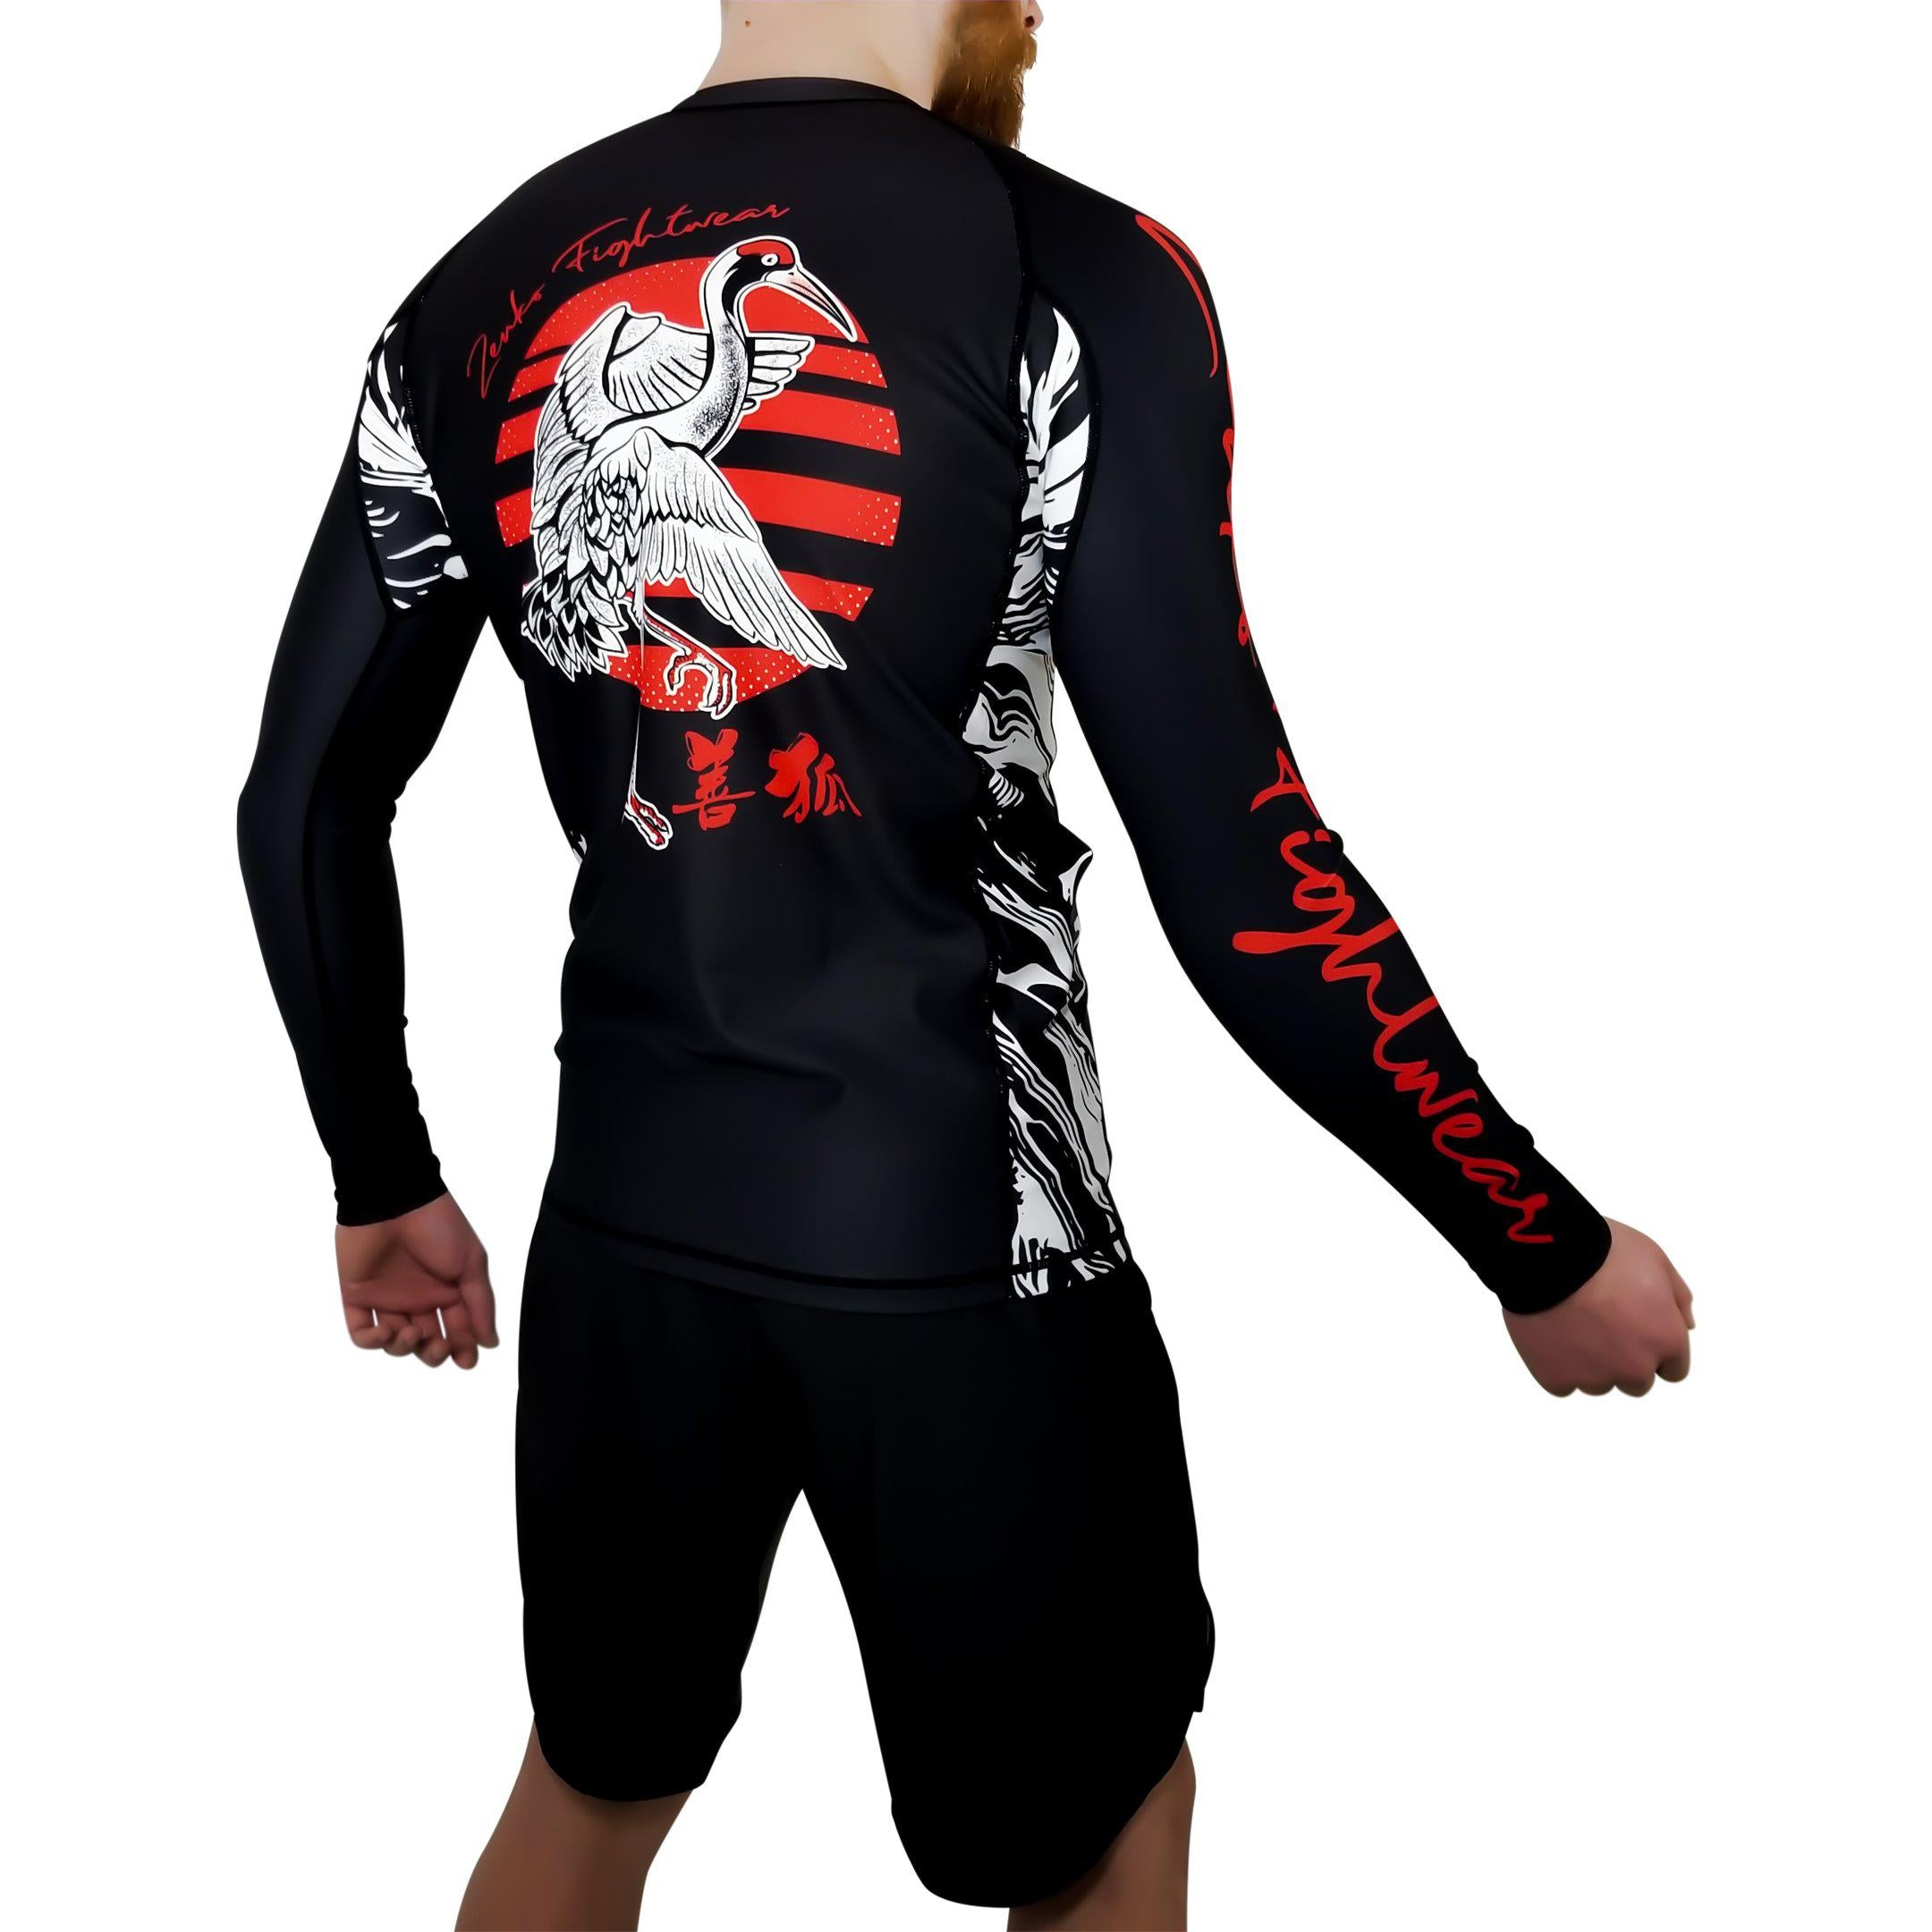 Zenko Fightwear Nihon Rashguard & Fight Shorts Back